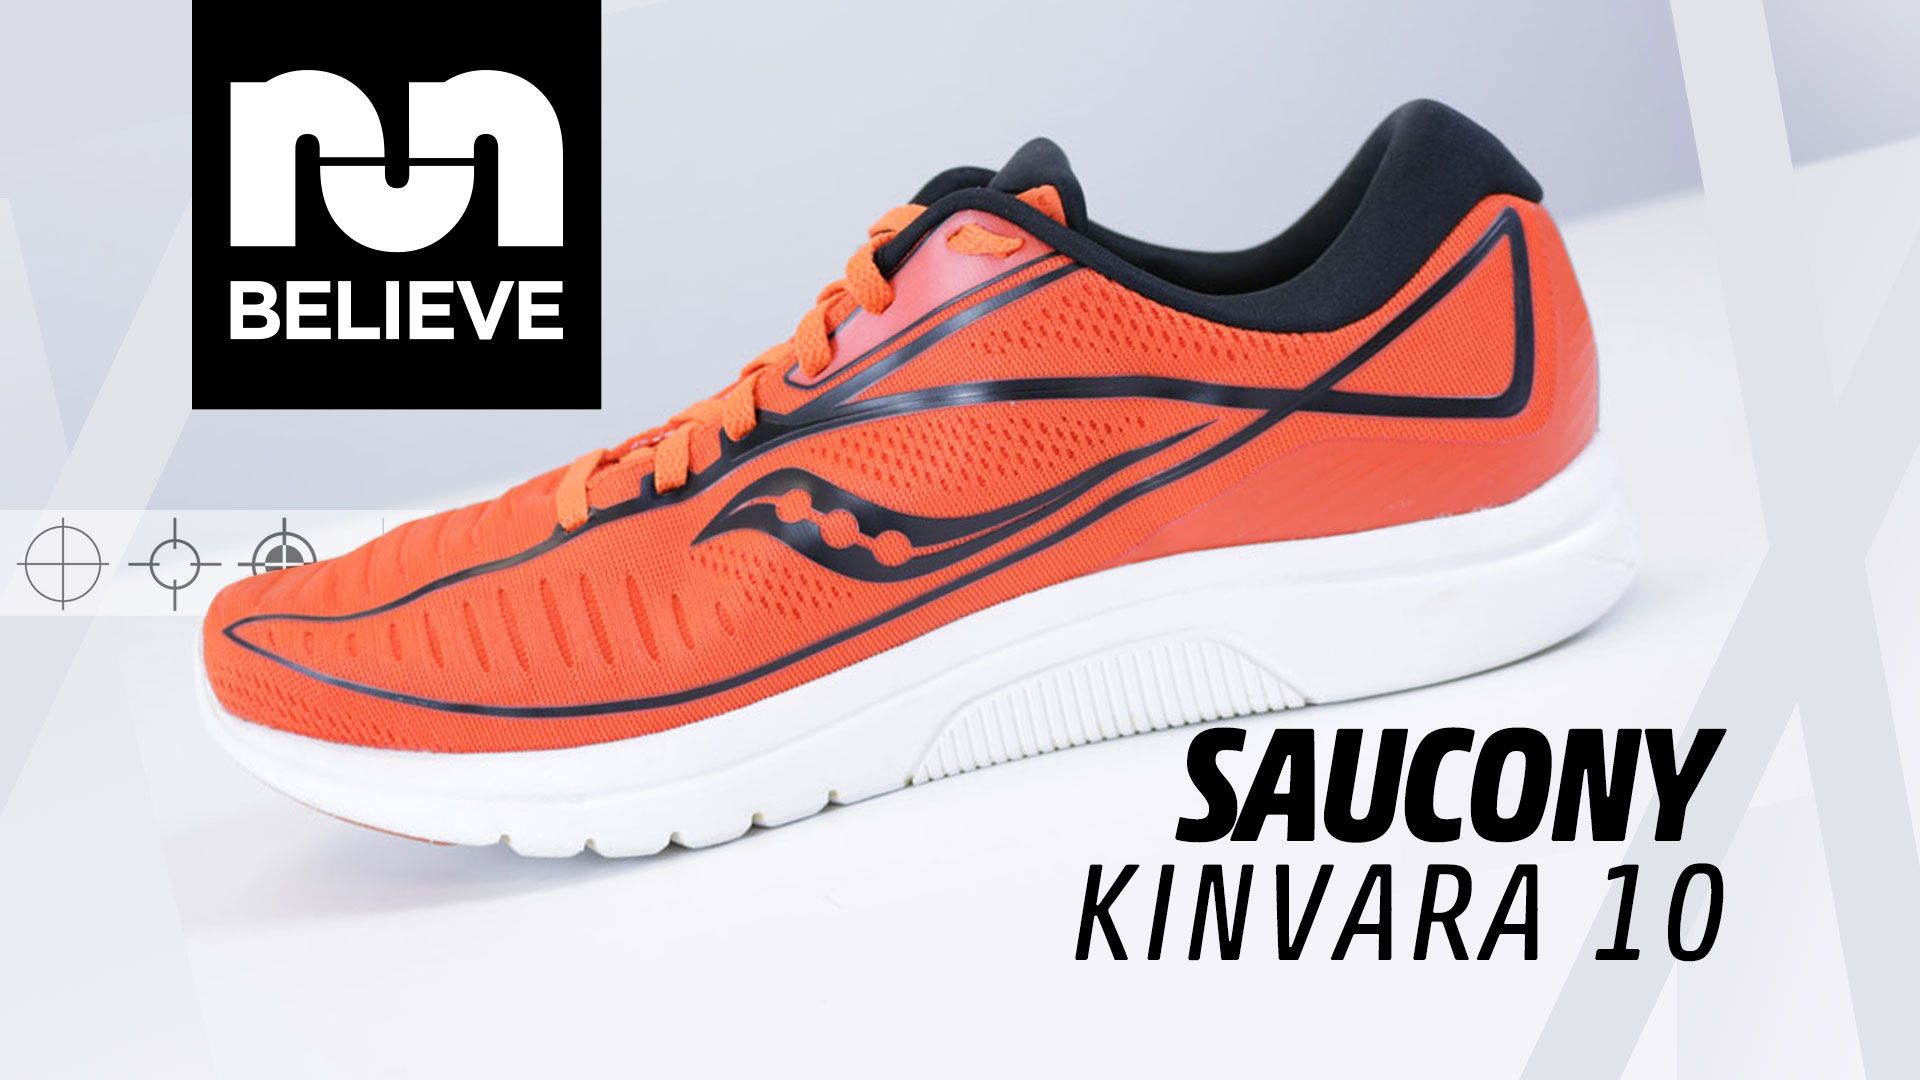 79e5cbc6879bb5 Saucony Kinvara 10 Video Performance Review Running Shoes